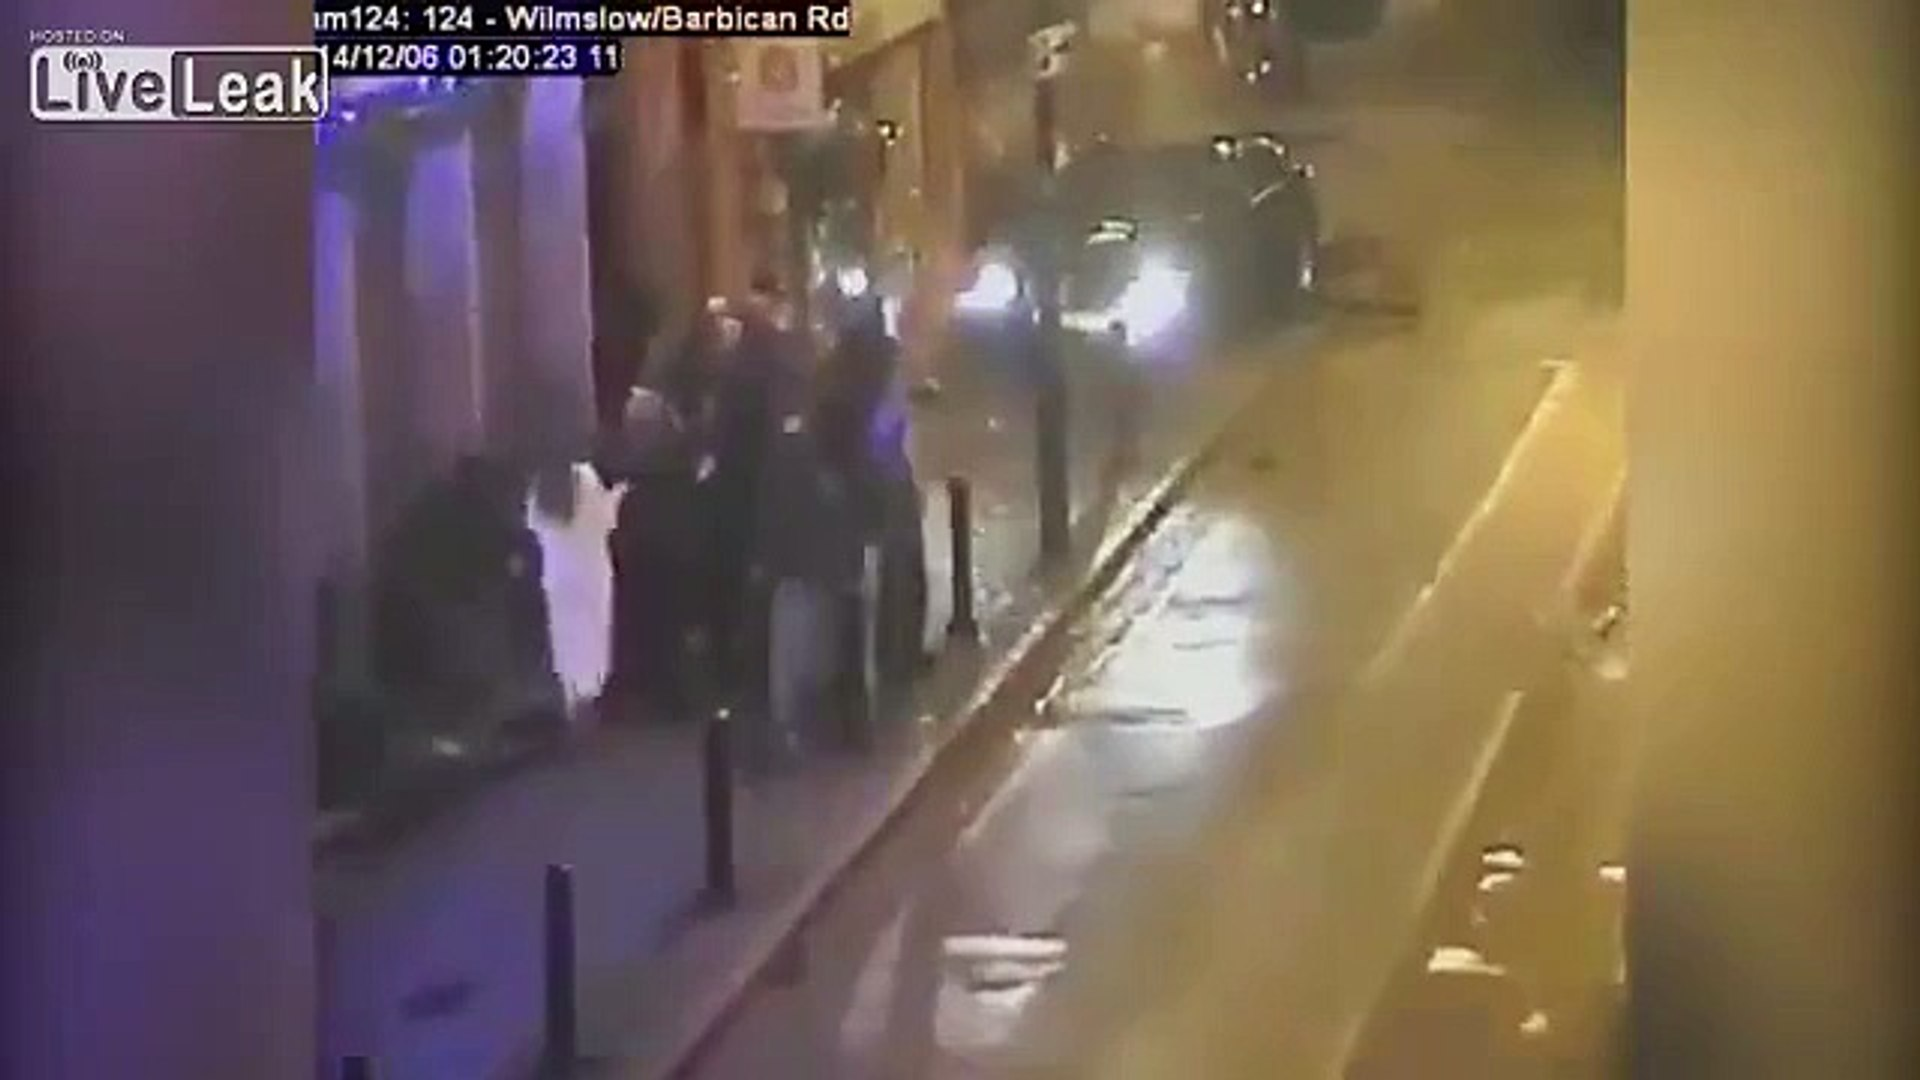 Shocking moment. Drunk driver ploughs into young woman in botched revenge attack